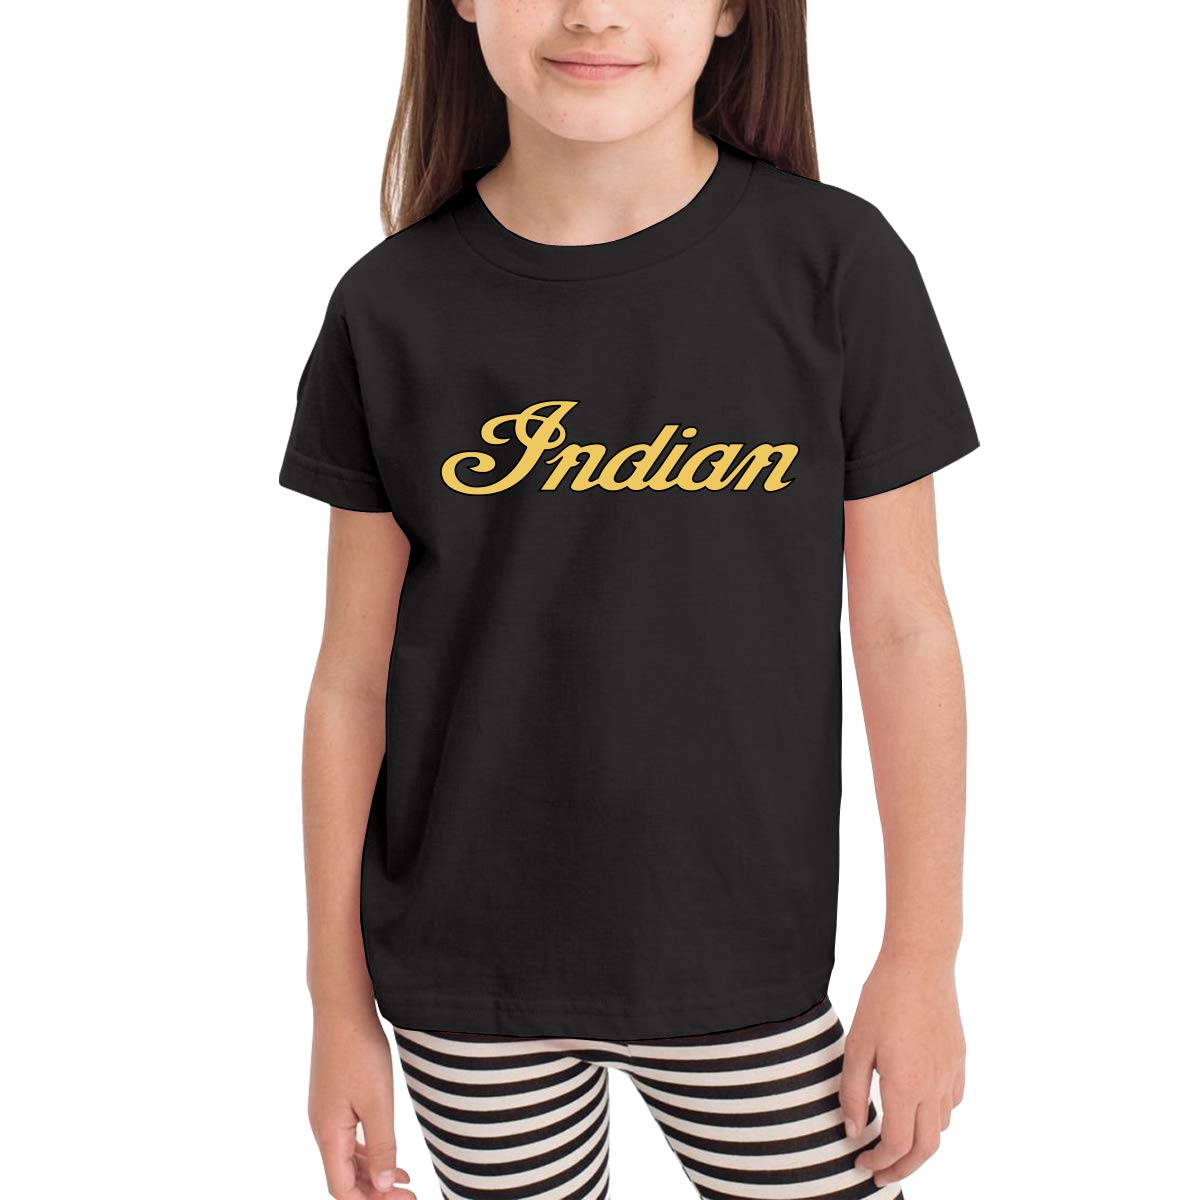 Funny T Shirts Online Shopping In India